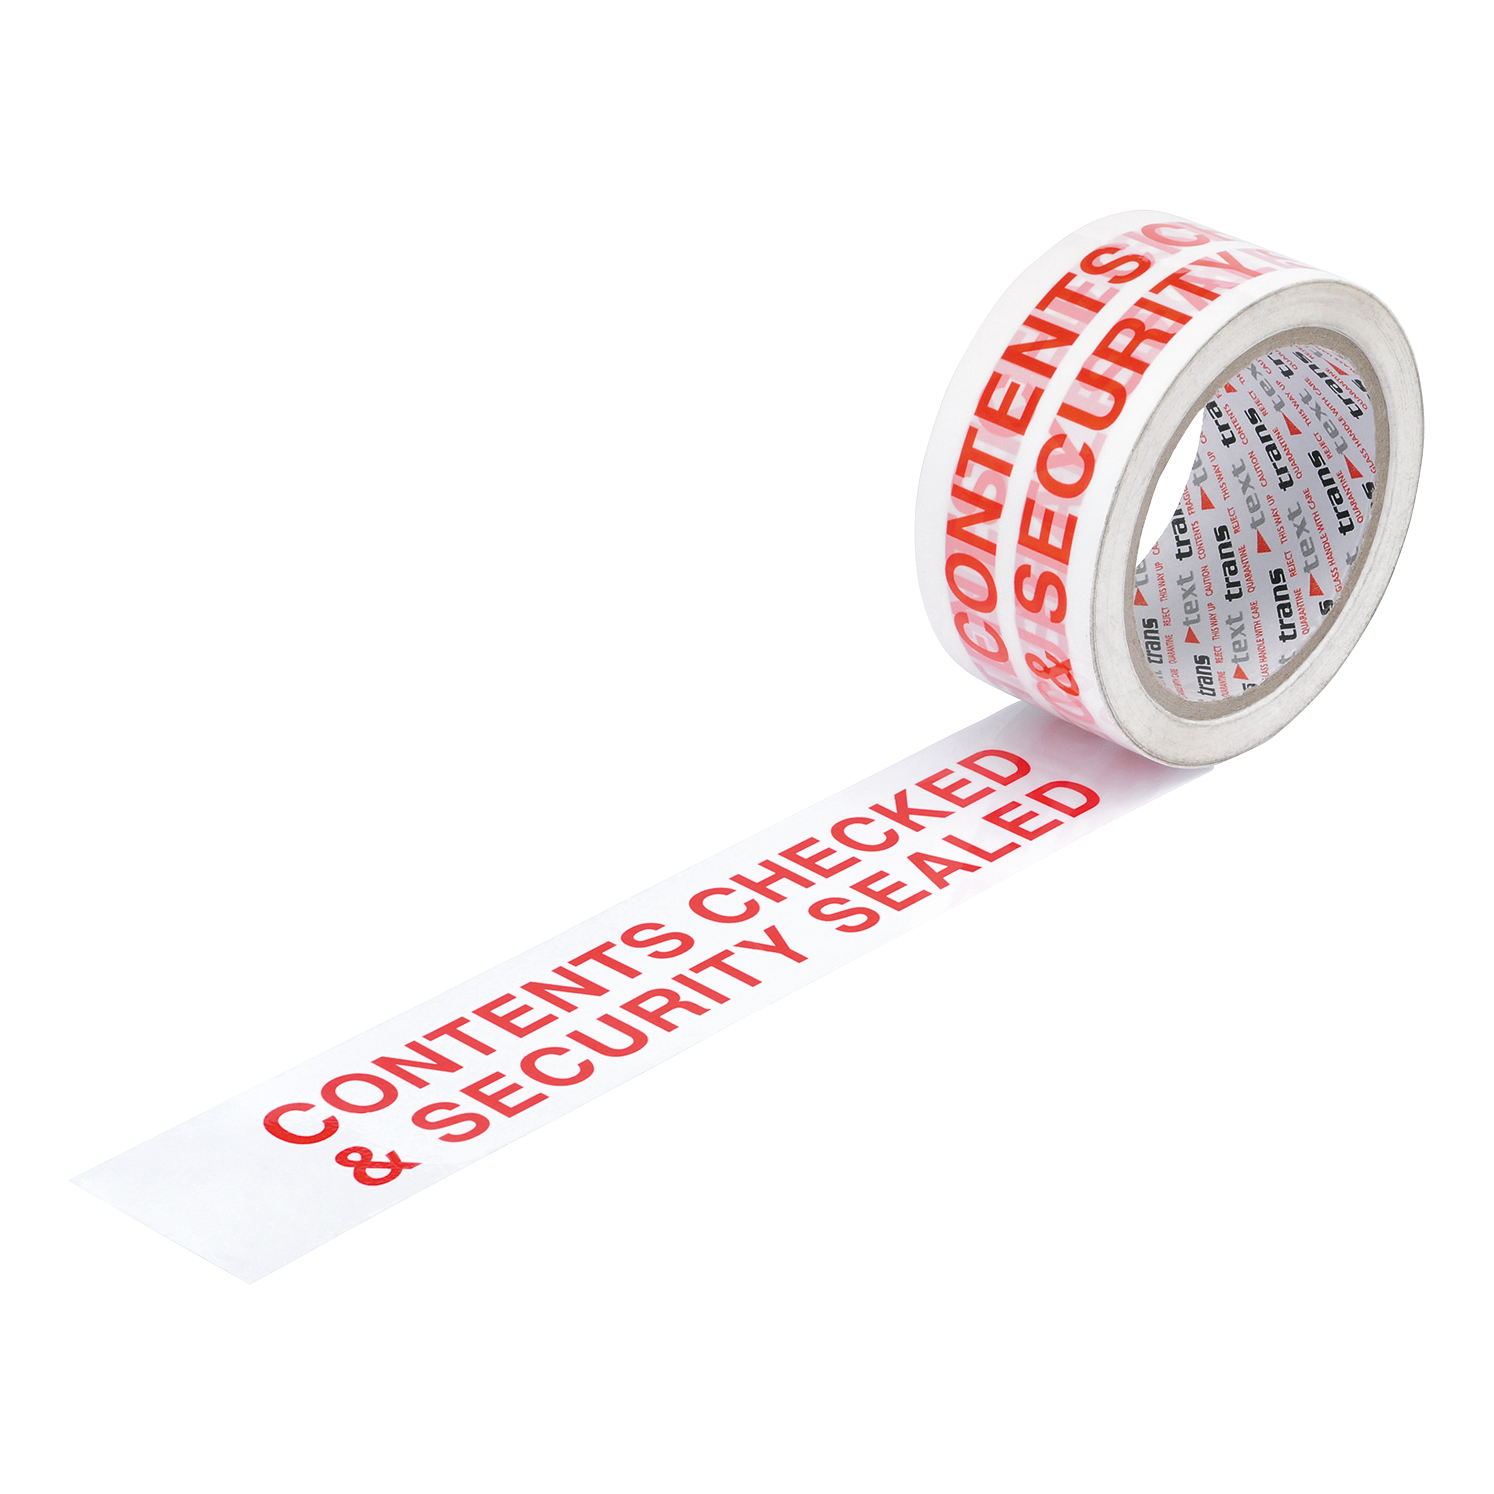 Printed & Coloured Tape 5 Star Office Printed Tape Contents Checked and Sealed Polypropylene 48mmx66m Red Text on White Pack 6